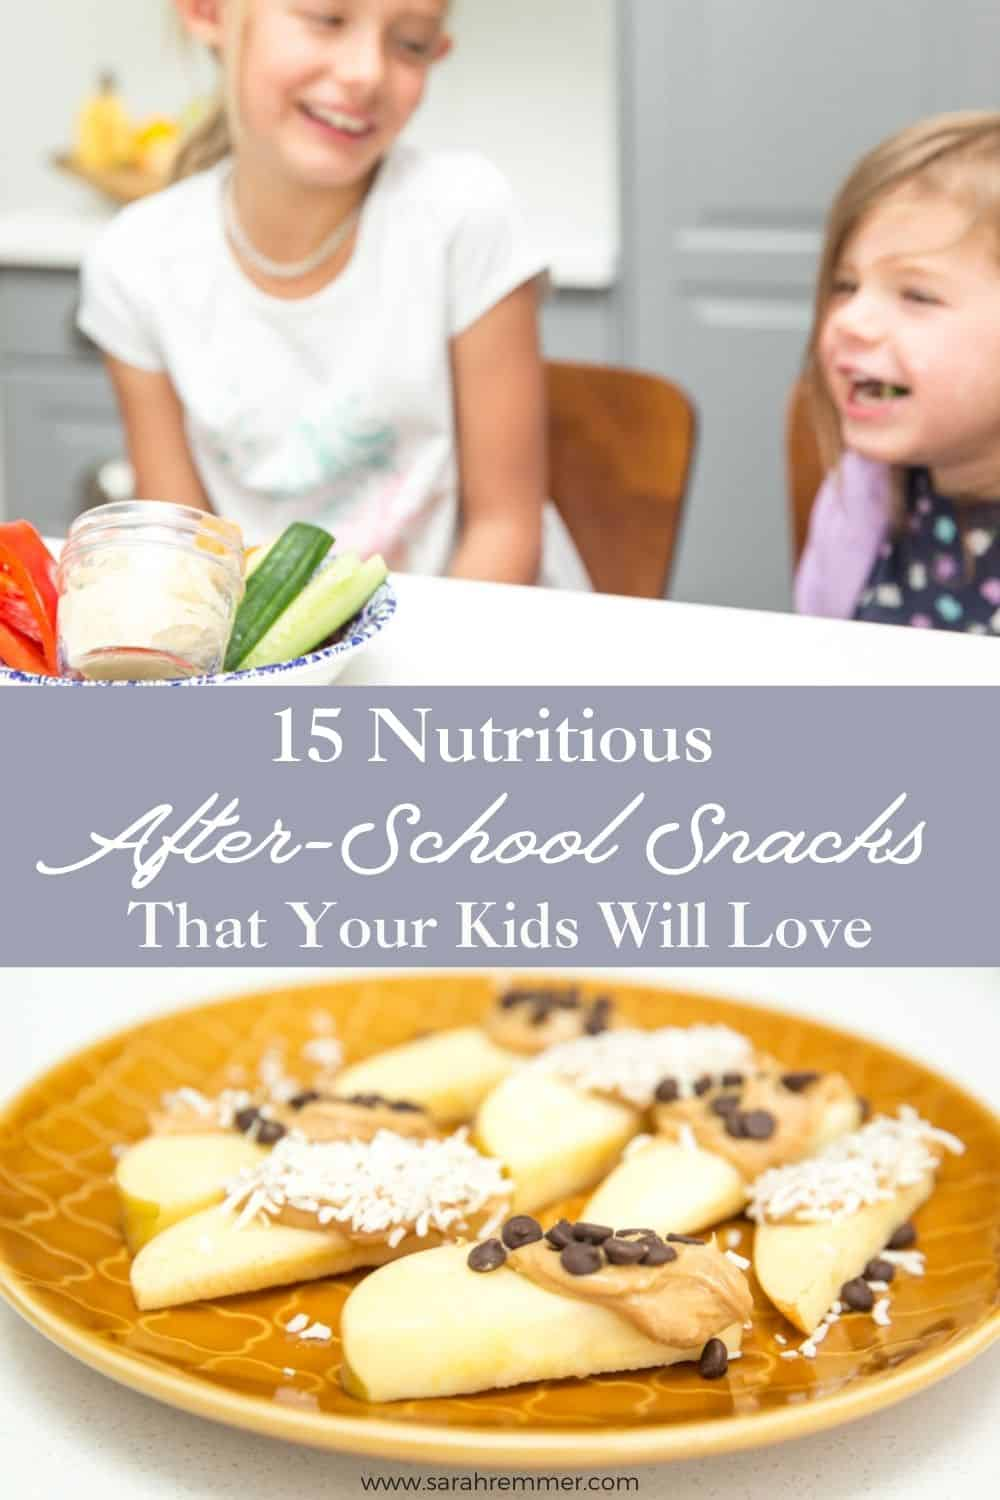 There's no hunger quite like after-school hunger! That's why you need this list of 15 easy, healthy and kid-approved after-school snacks! You can thank me later.